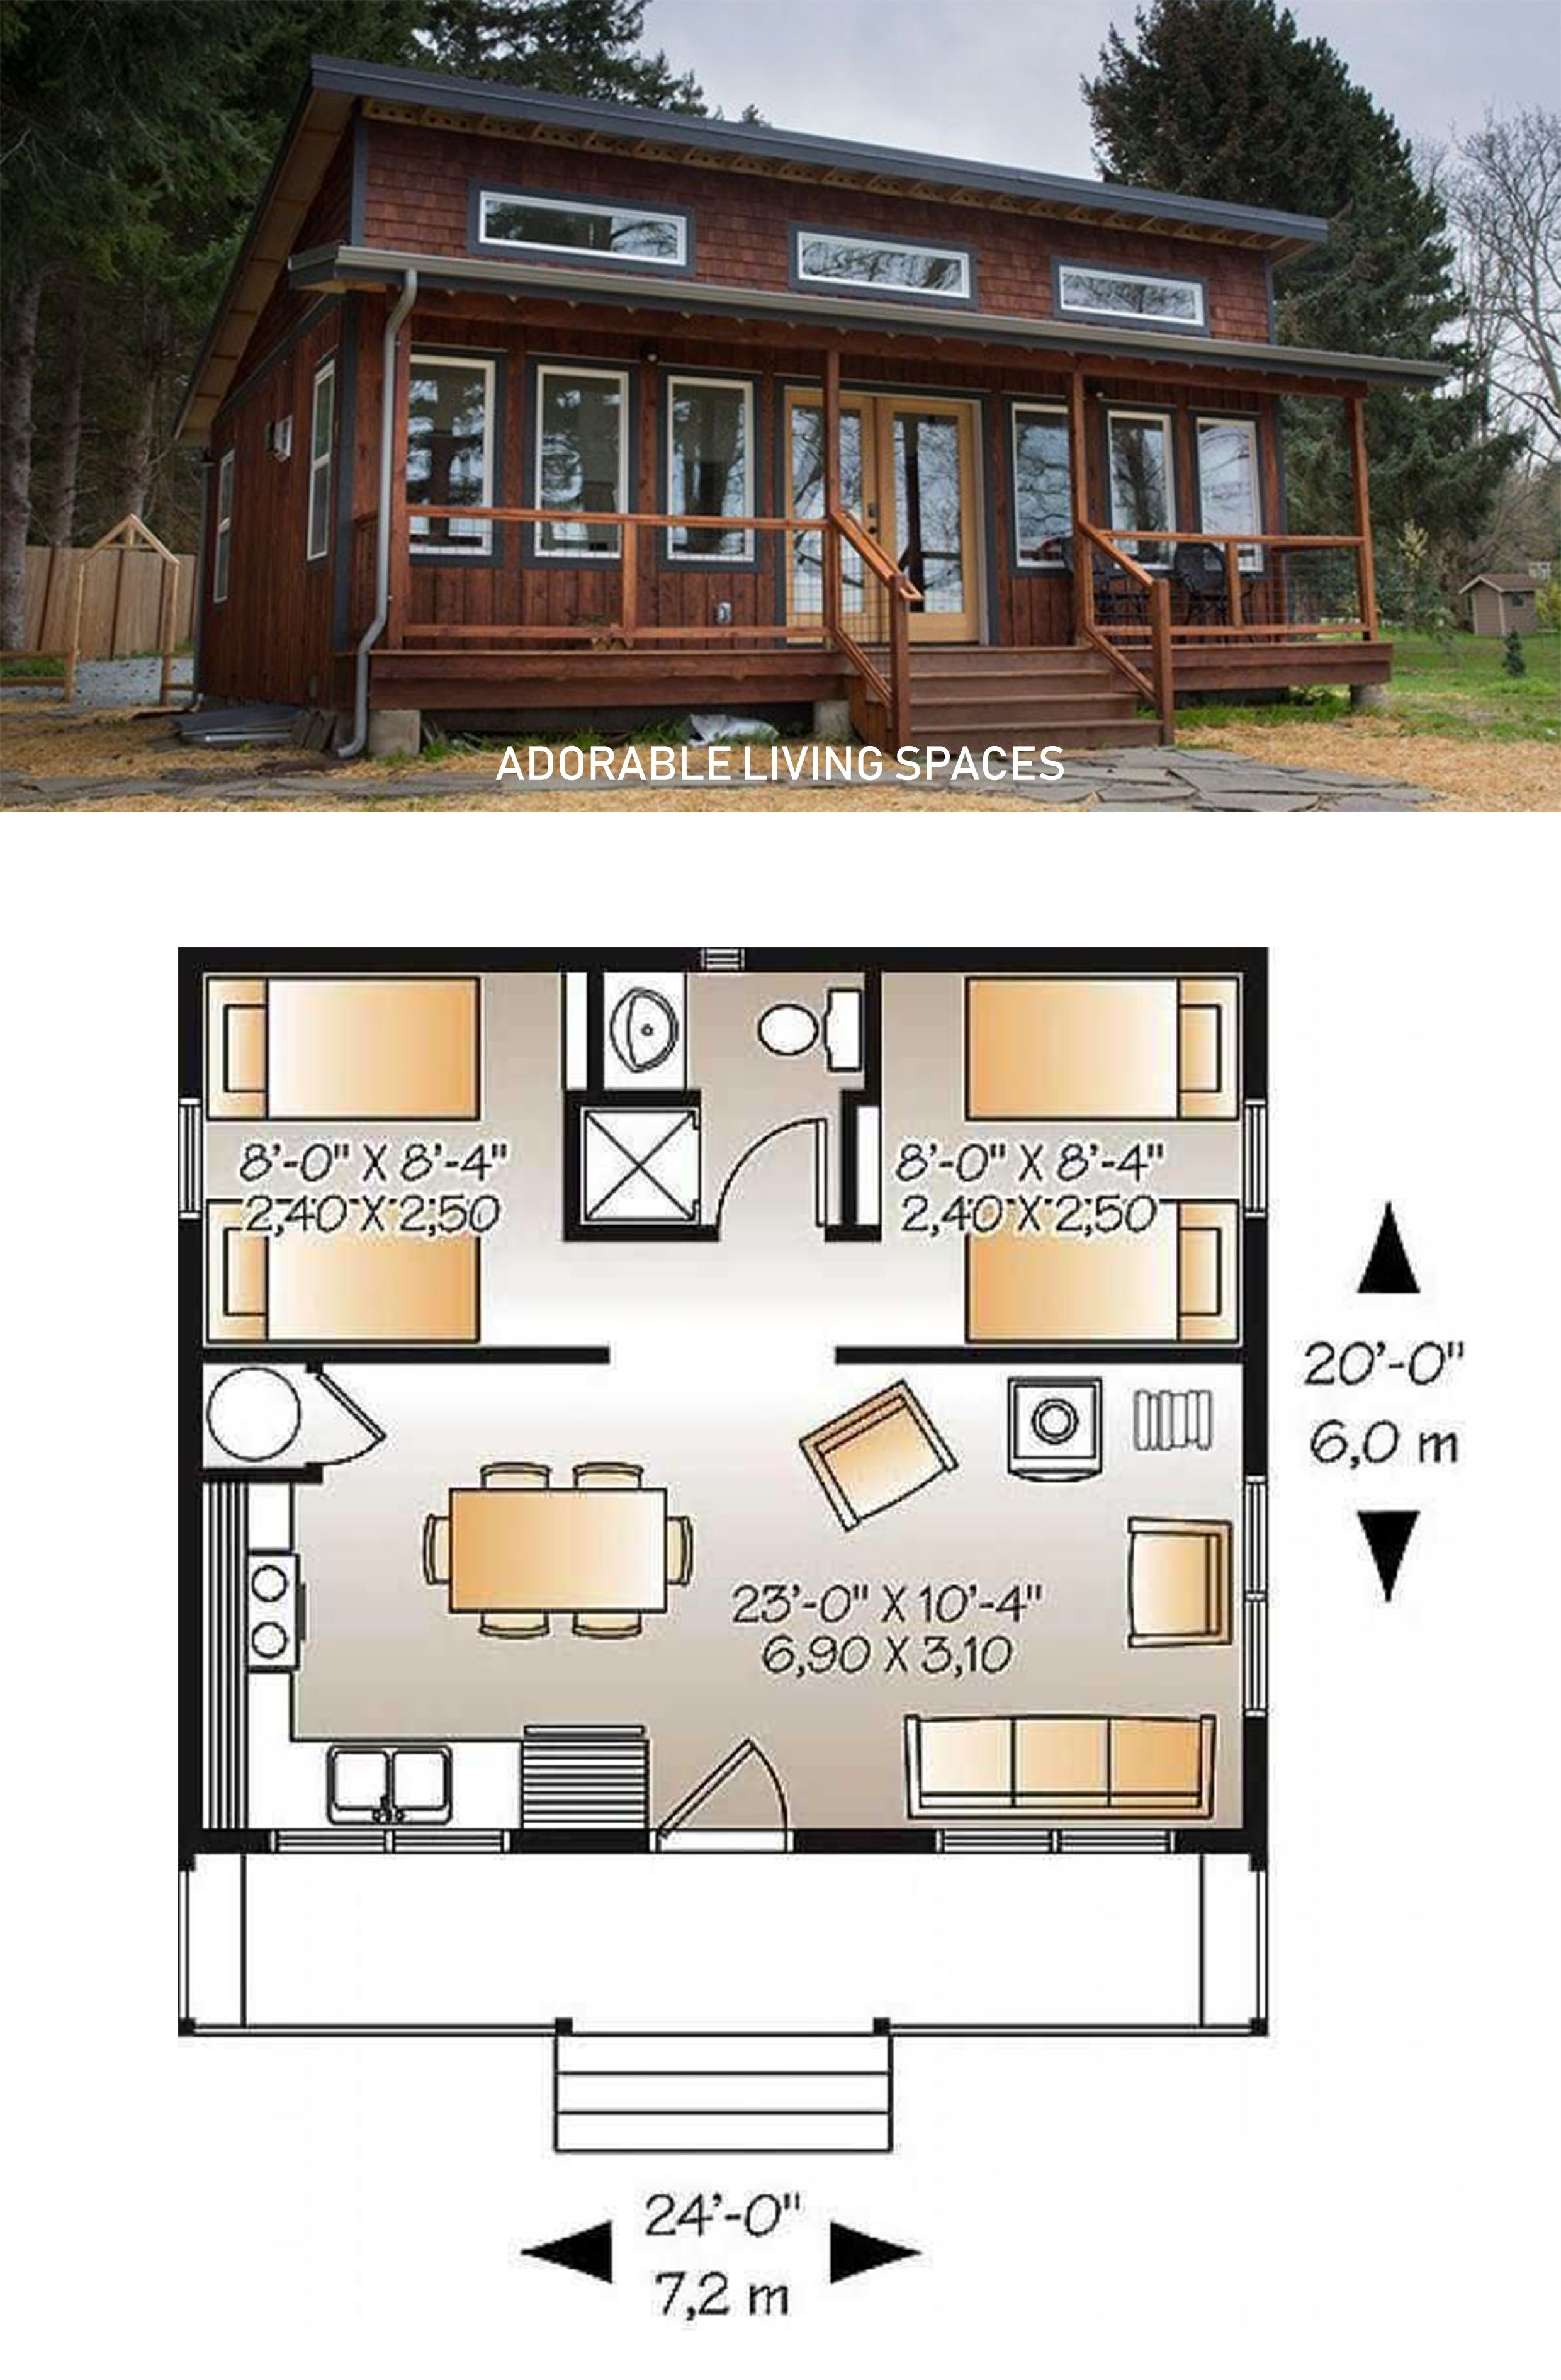 A Simple 24 Foot By 20 Foot Cottage With An Awesome Floor Plan Floor Plans Cabin Floor Plans Cottage Floor Plans